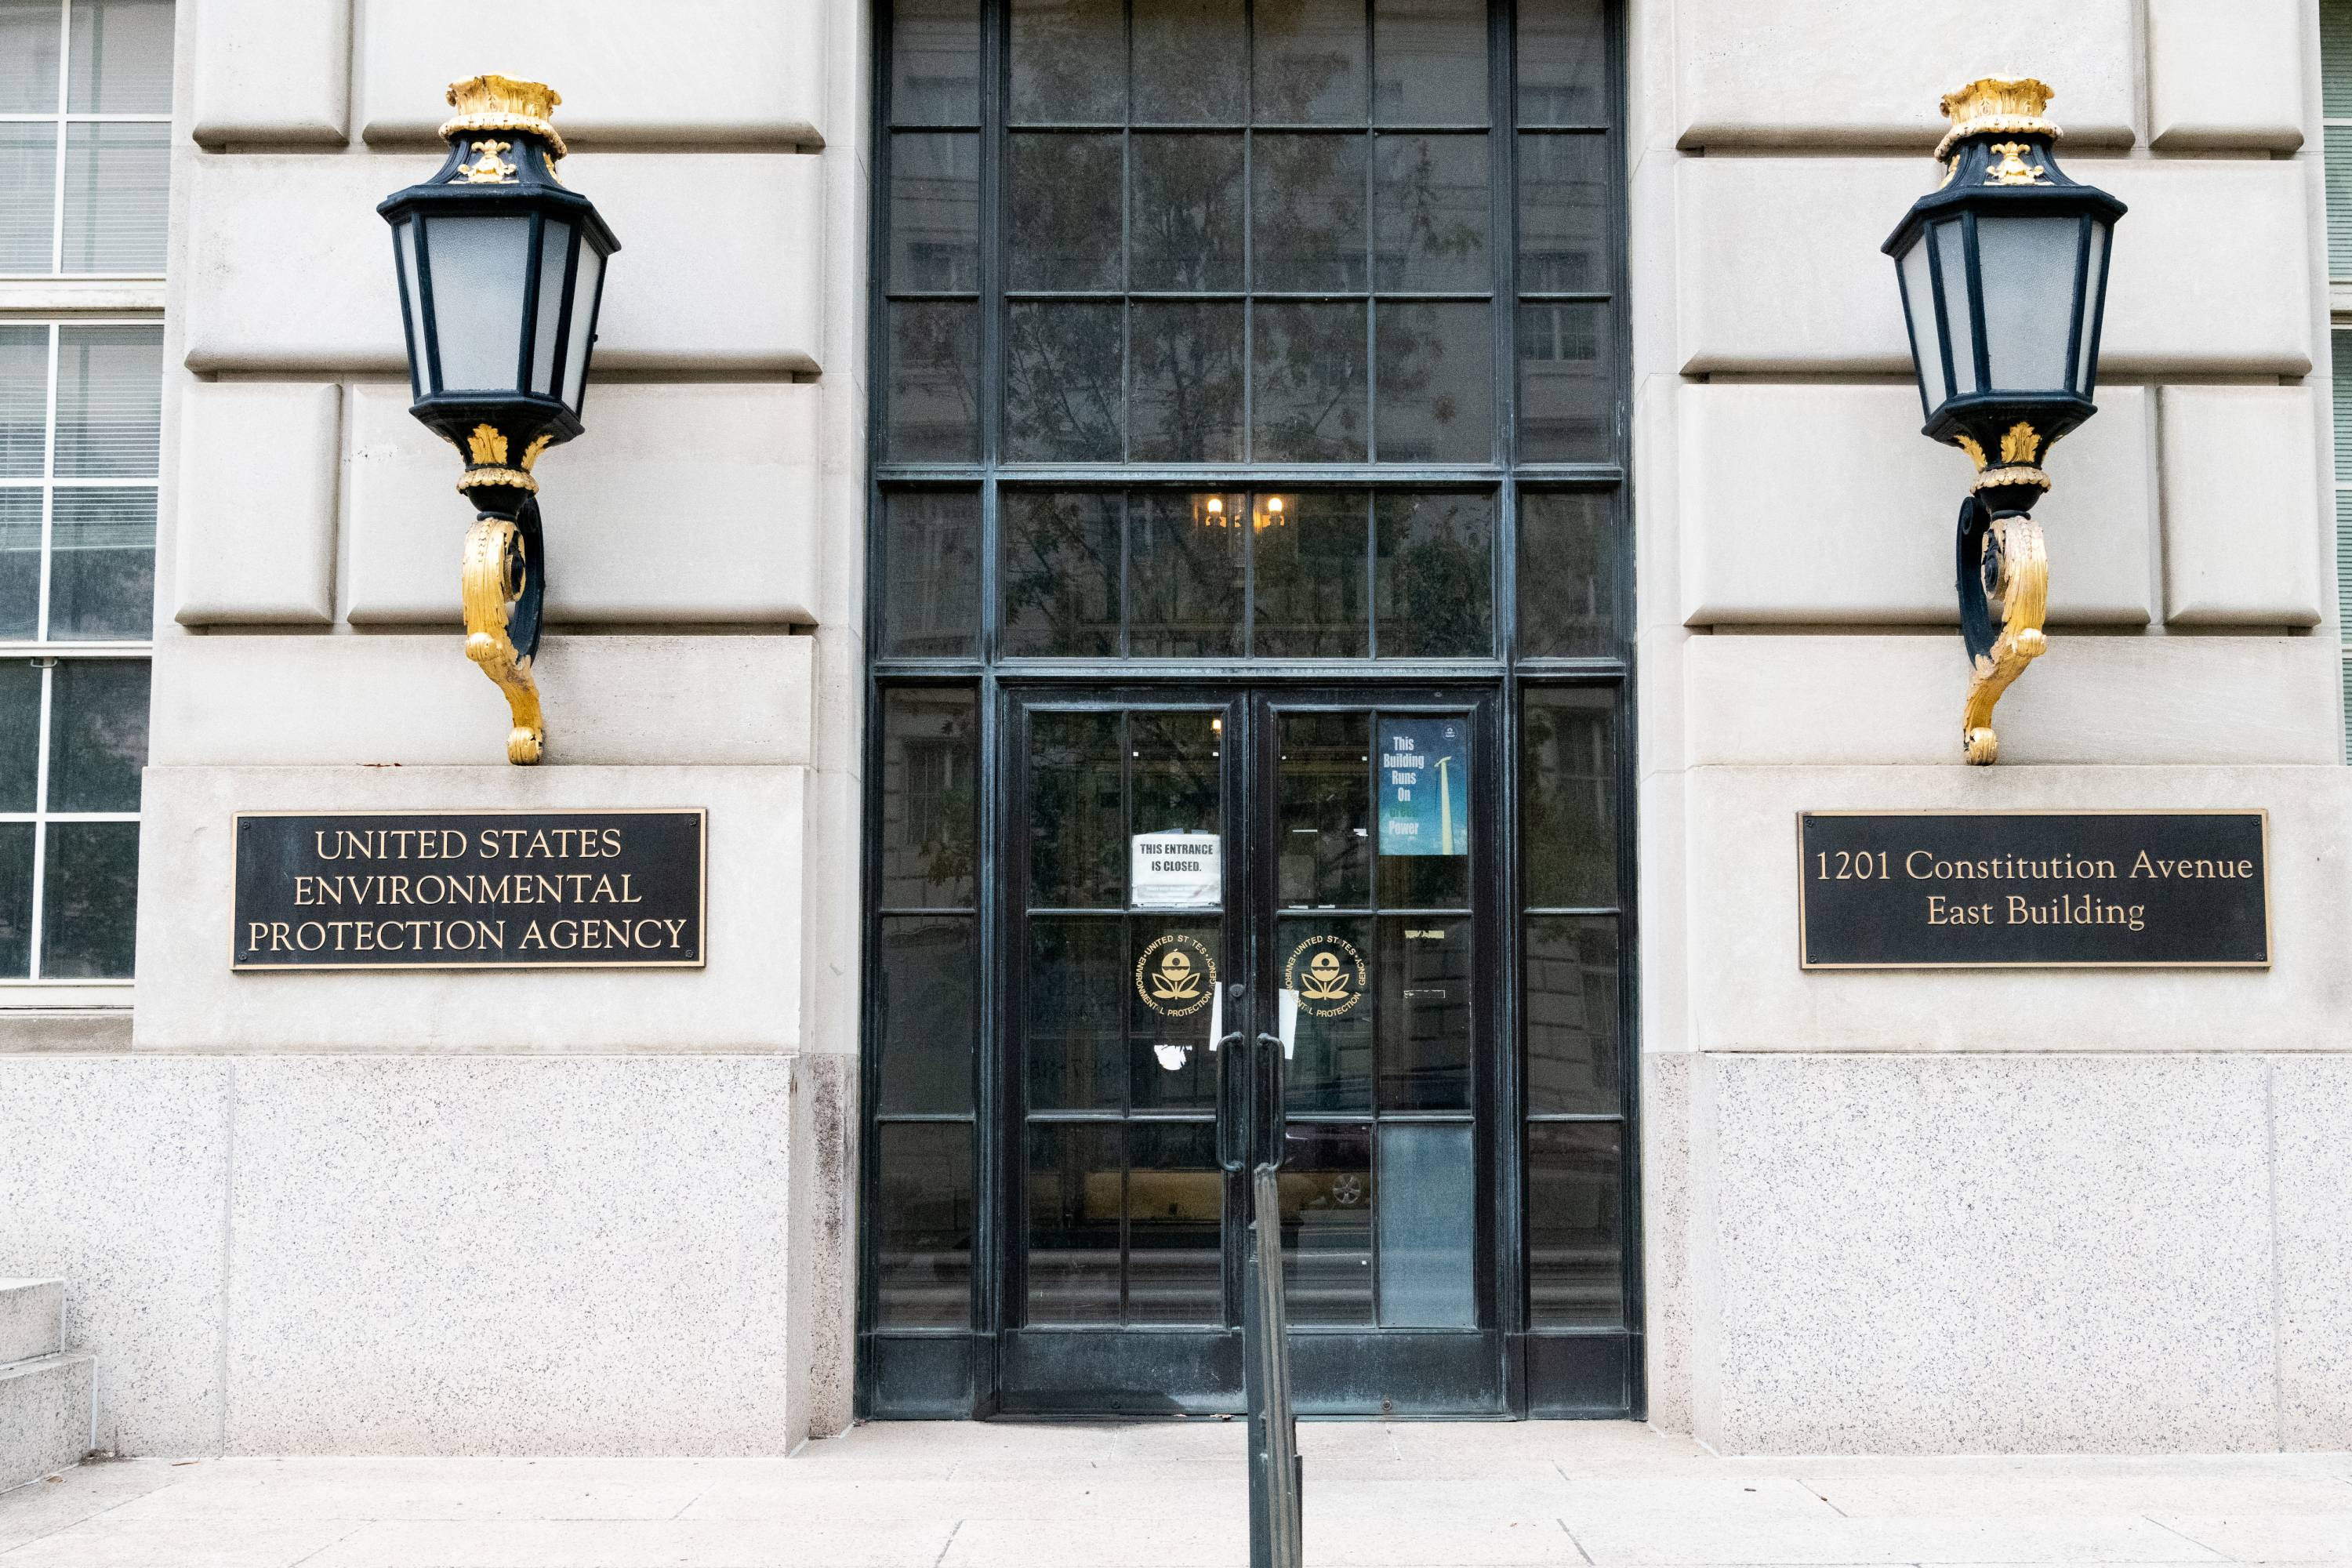 The Environmental Protection Agency building in Washington,